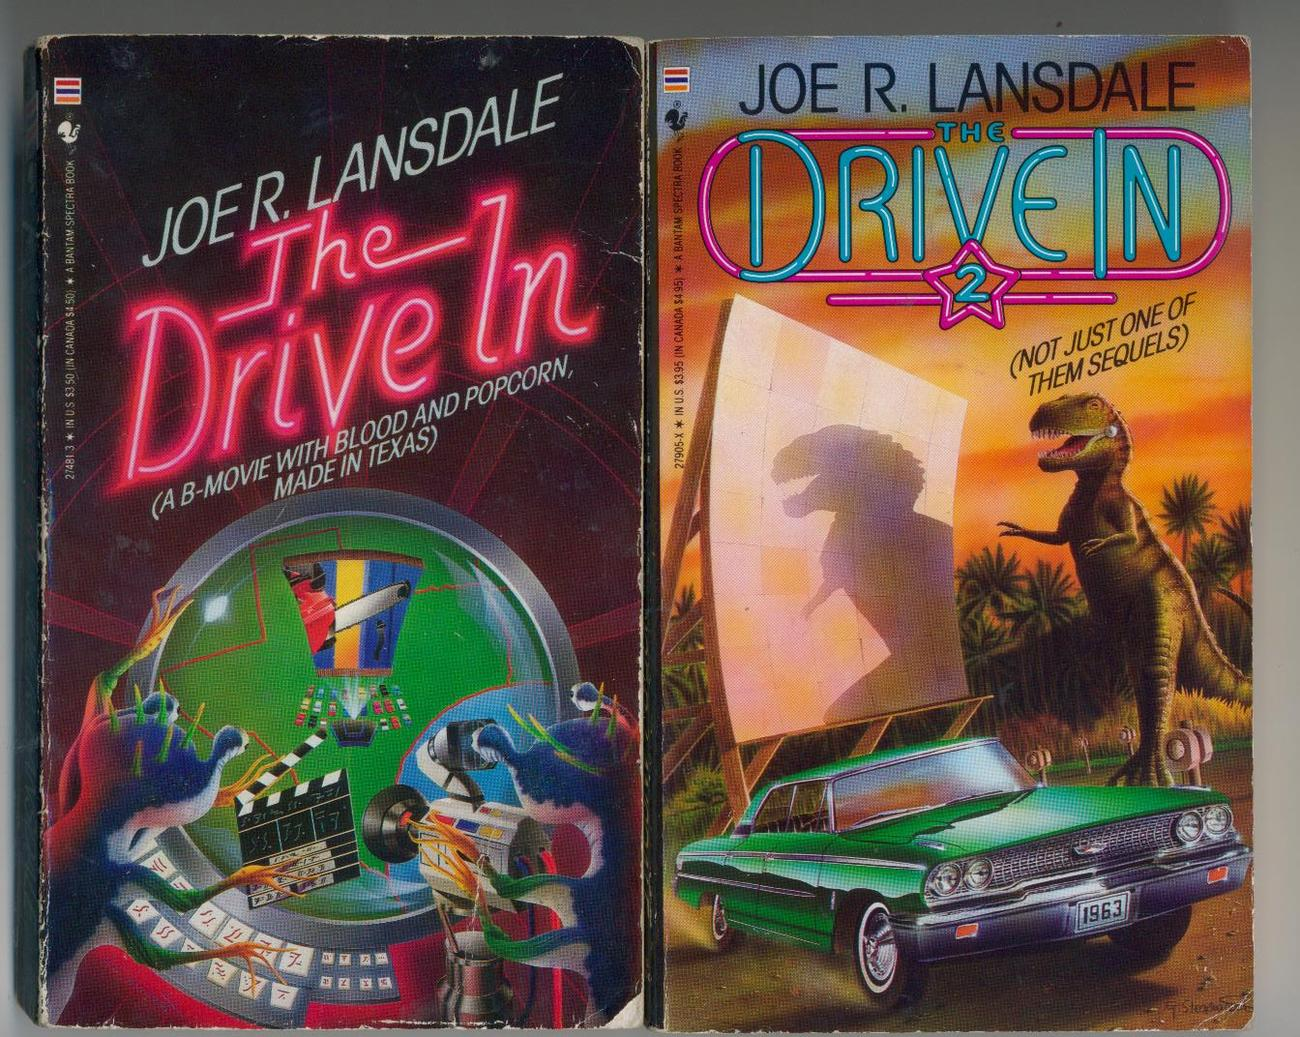 Lansdale - THE DRIVE-IN 1 & 2 - 1988/89 - 1st printings